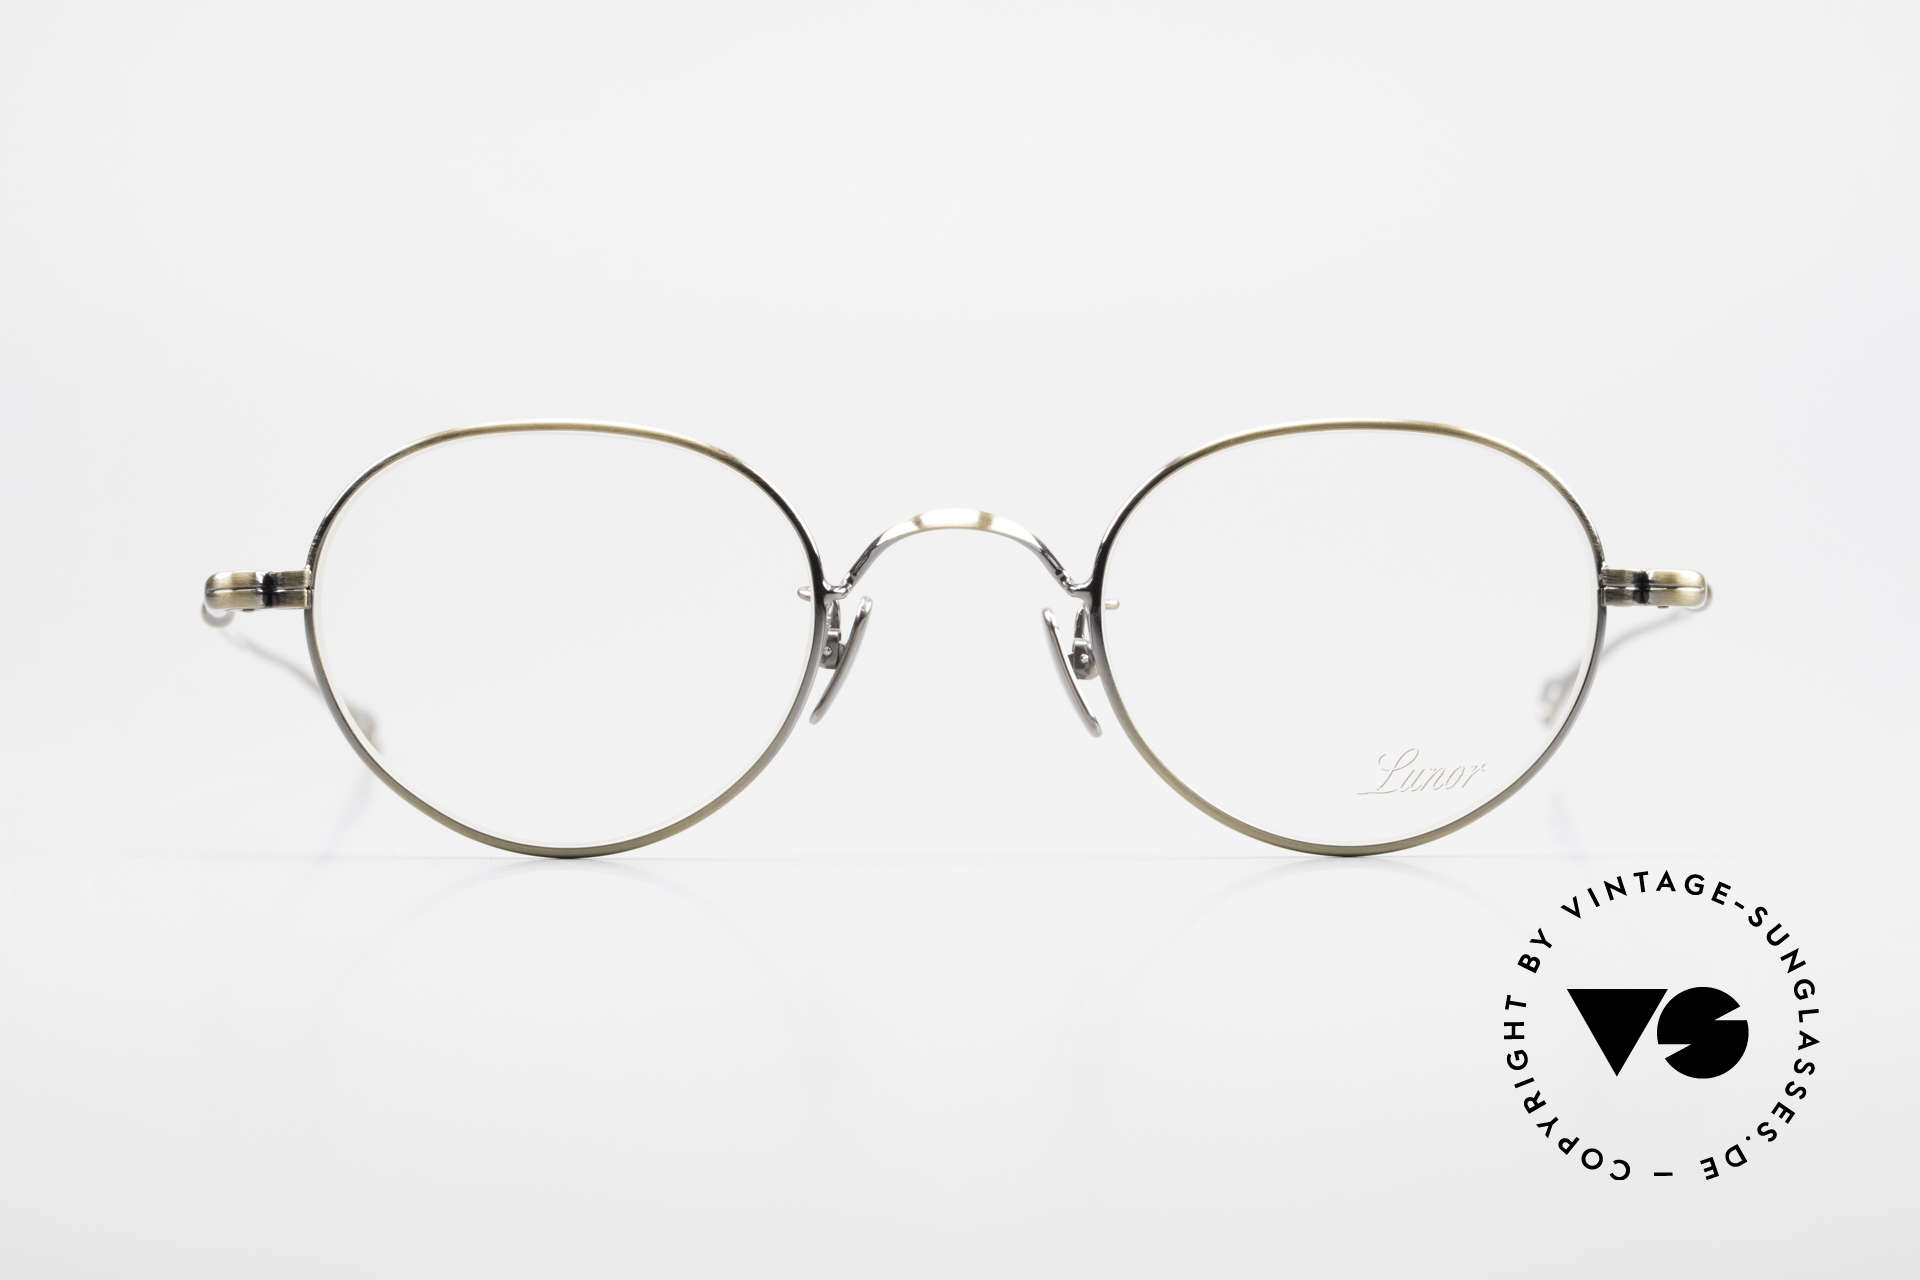 Lunor V 108 Metal Frame With Titanium Pads, without ostentatious logos (but in a timeless elegance), Made for Men